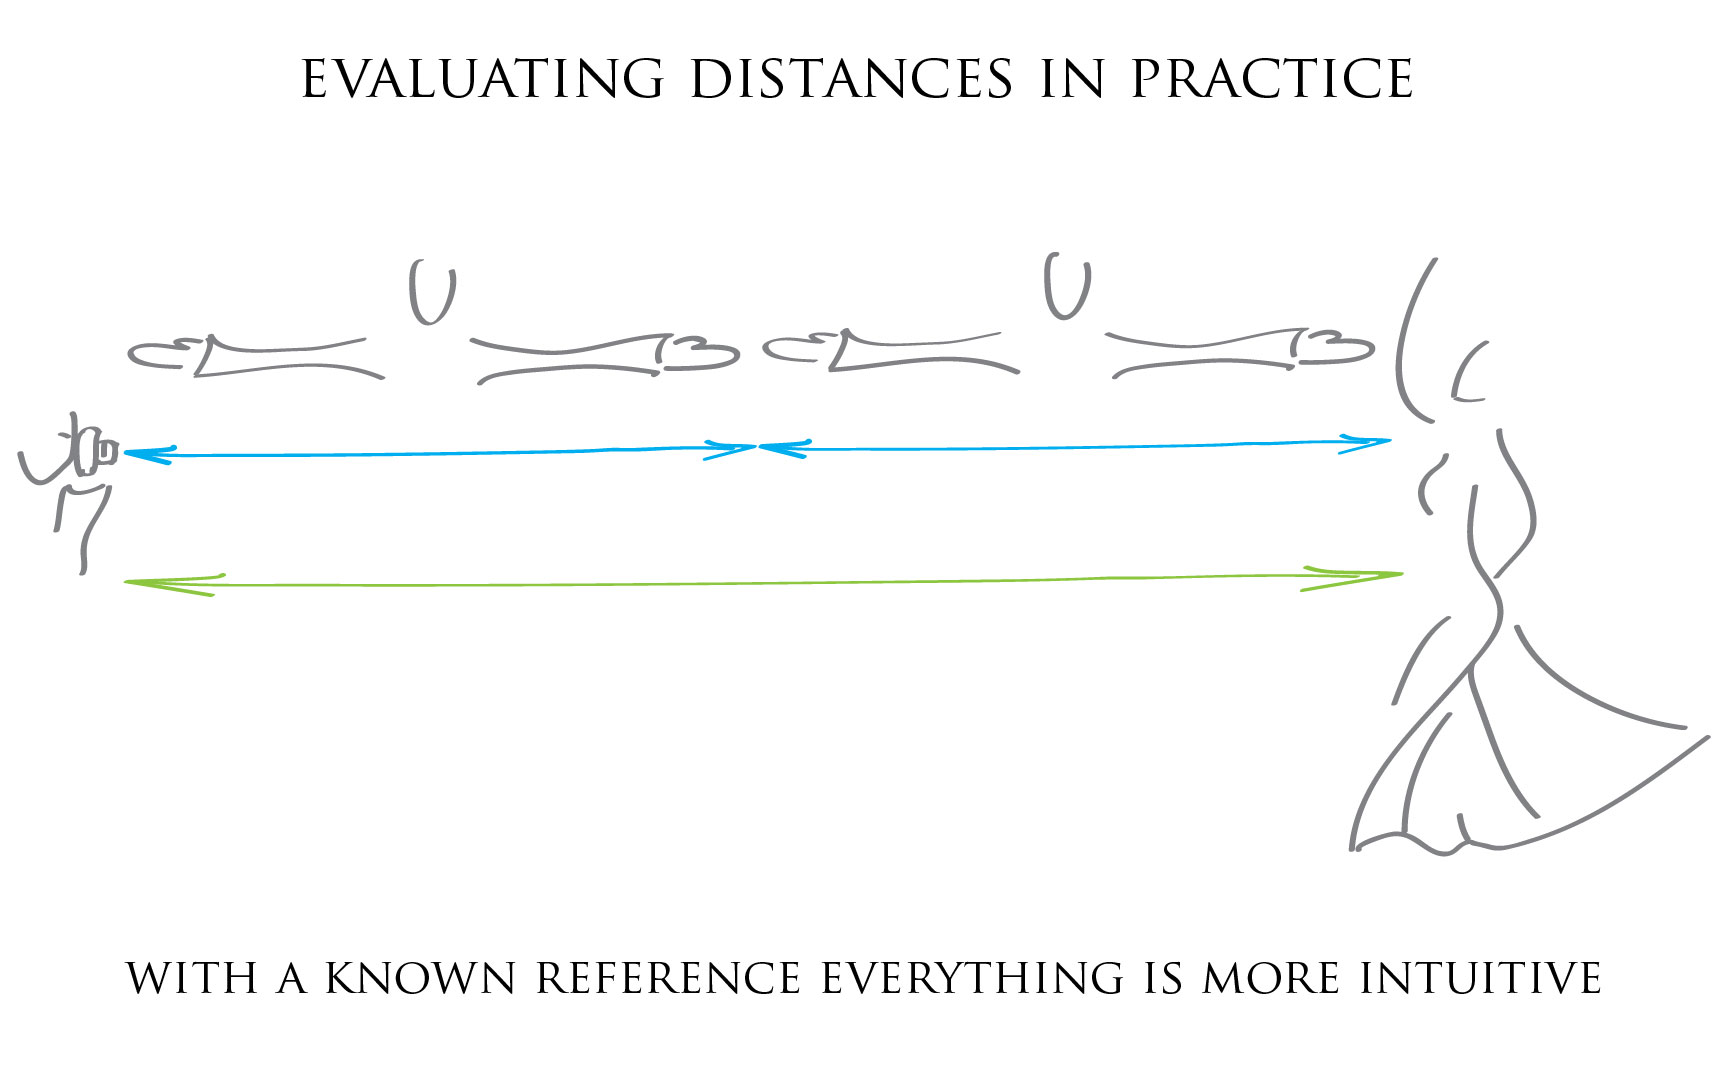 Illustration: Evaluating distances in practice